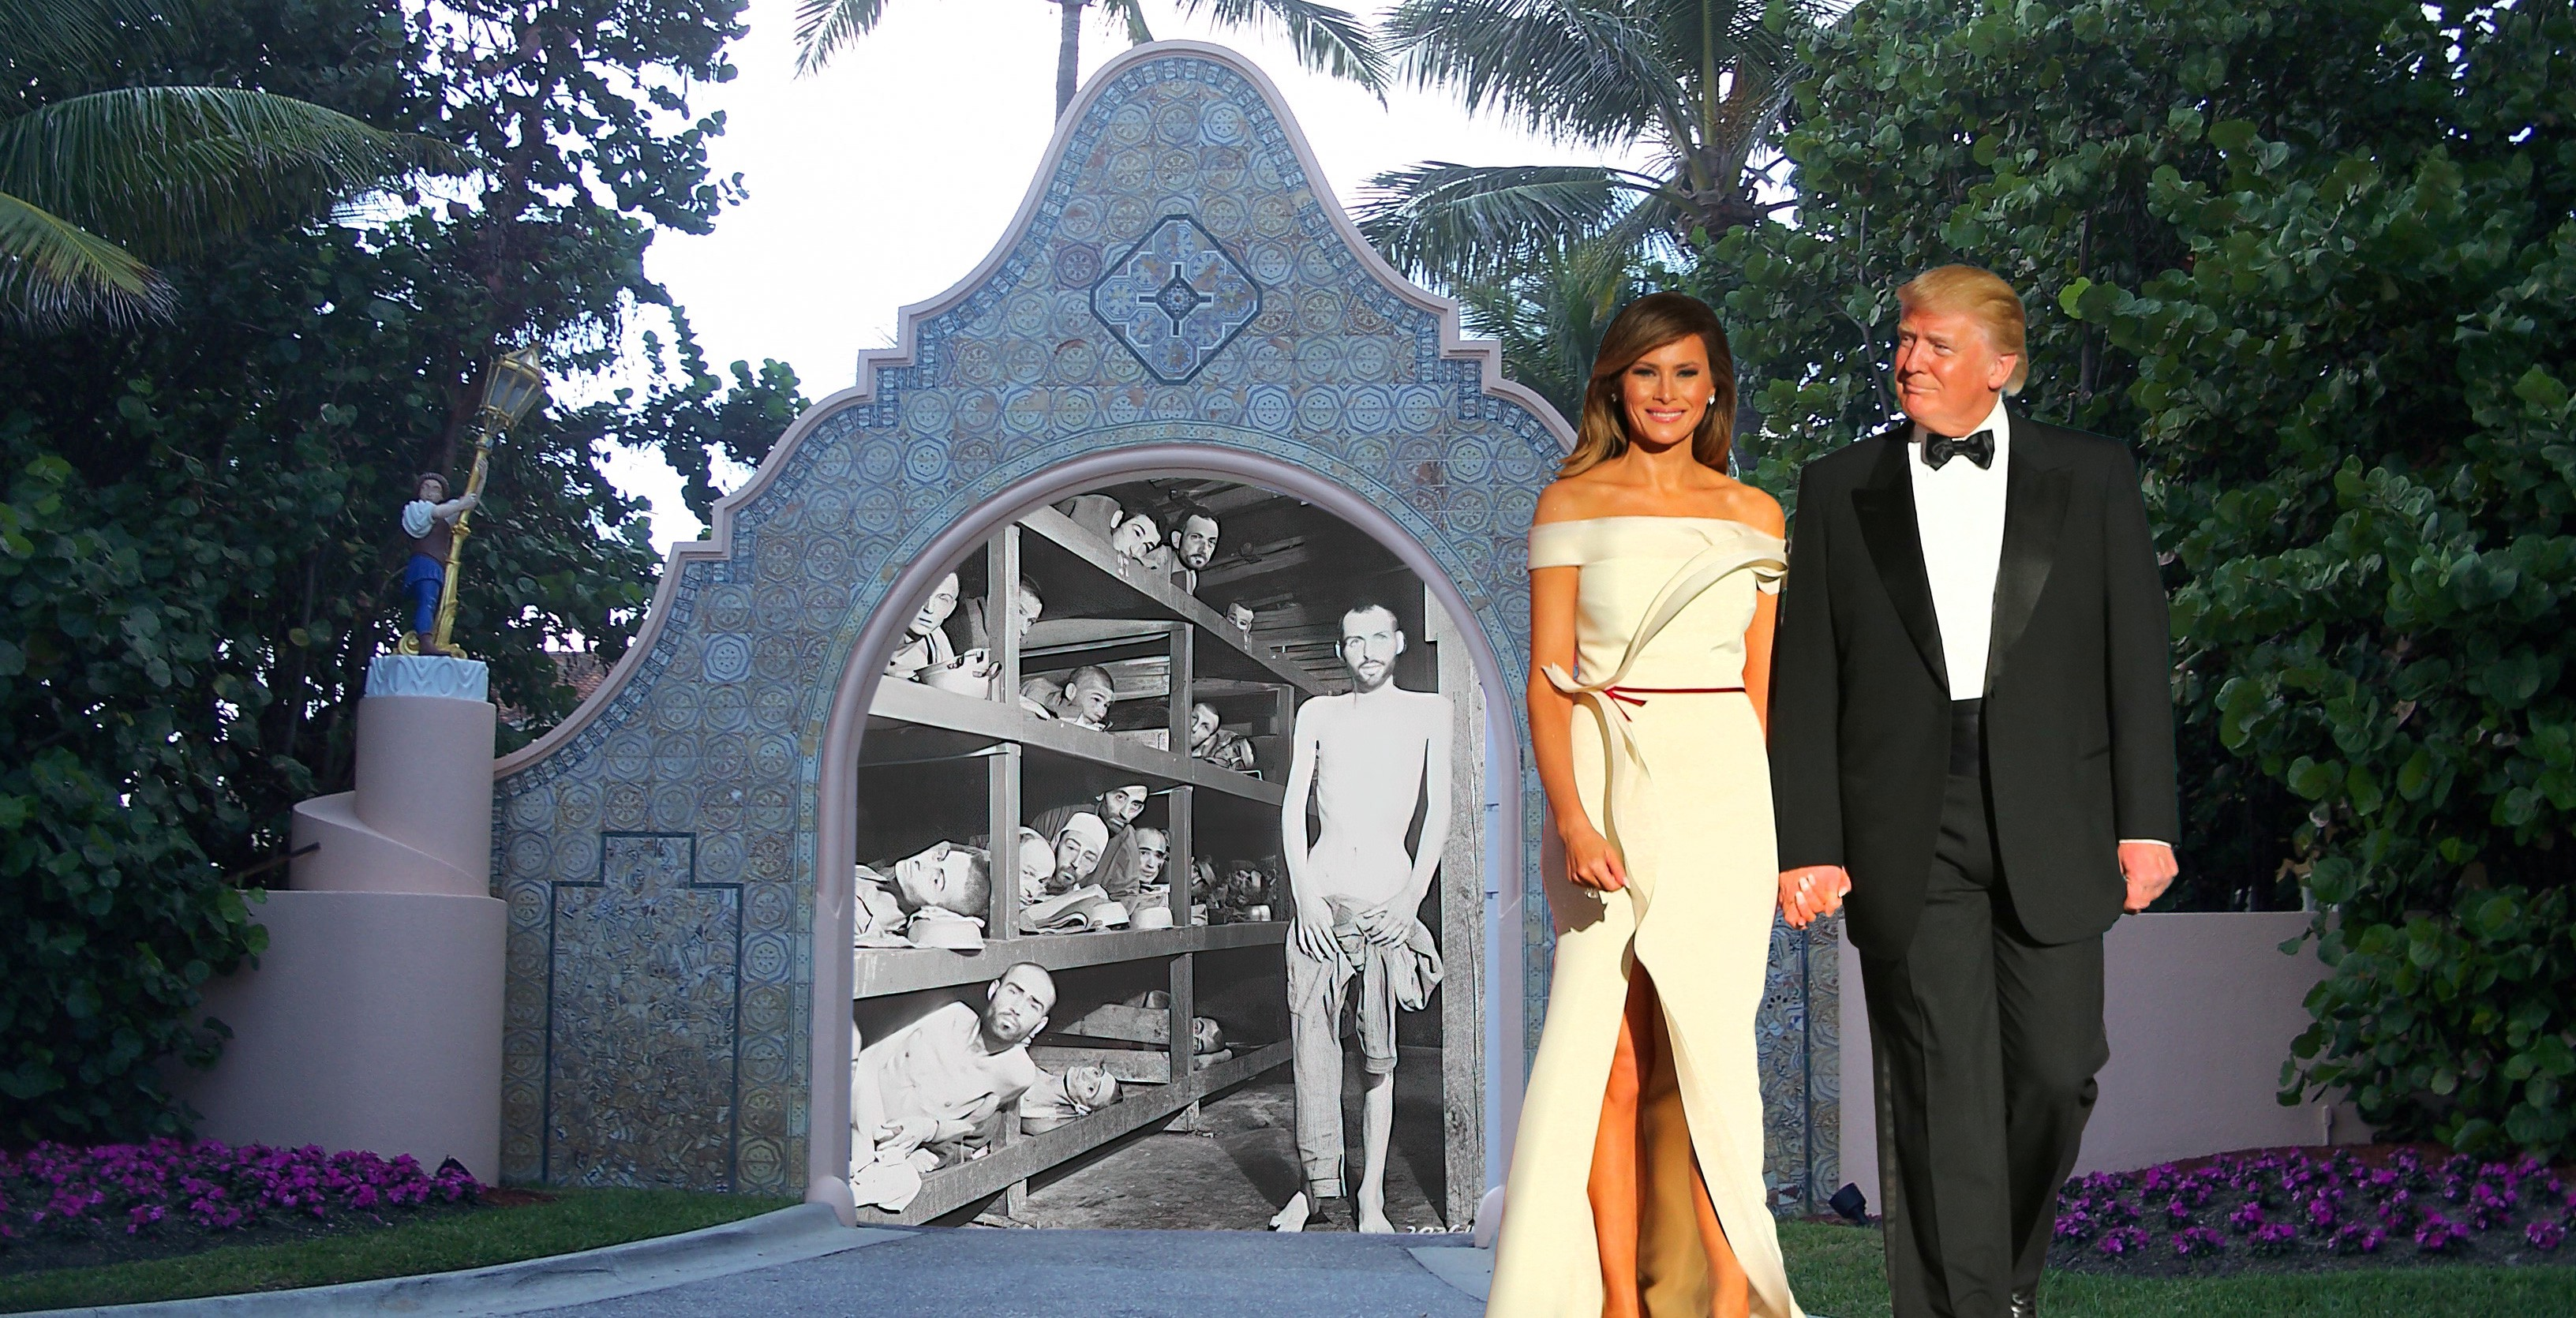 Trump and Melania show off their concentration camp